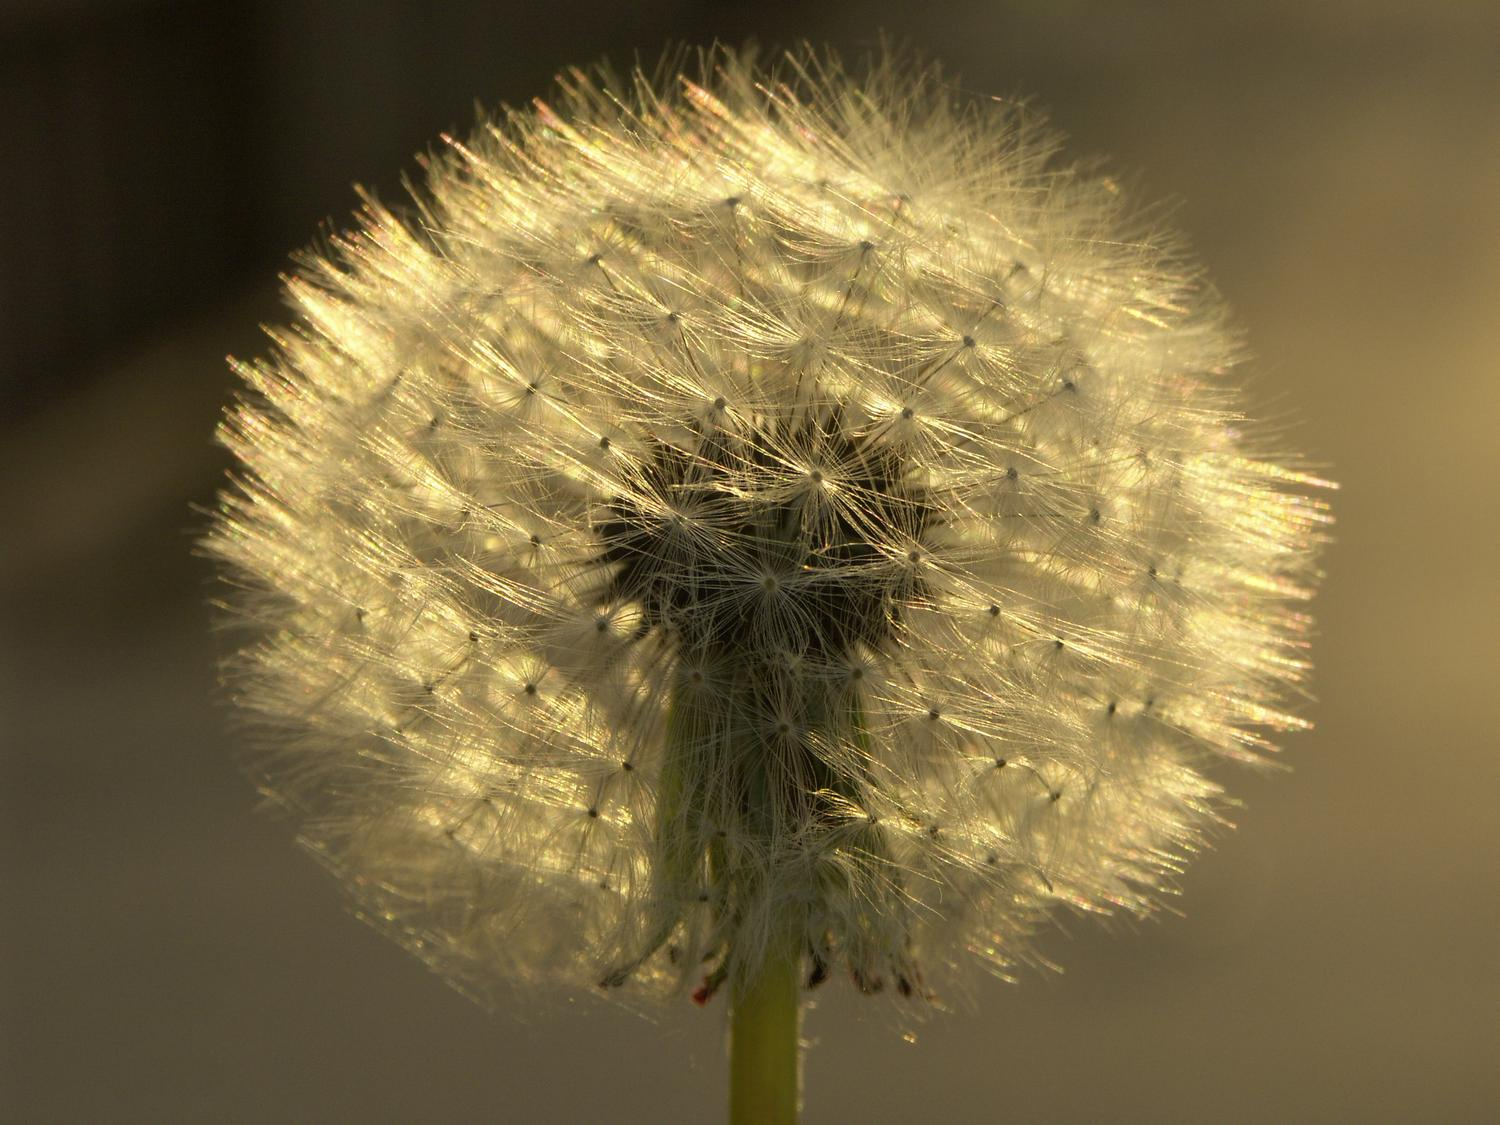 - Dandelions - Techno-Impressionist Museum - Techno-Impressionism - art - beautiful - photo photography picture - by Tony Karp